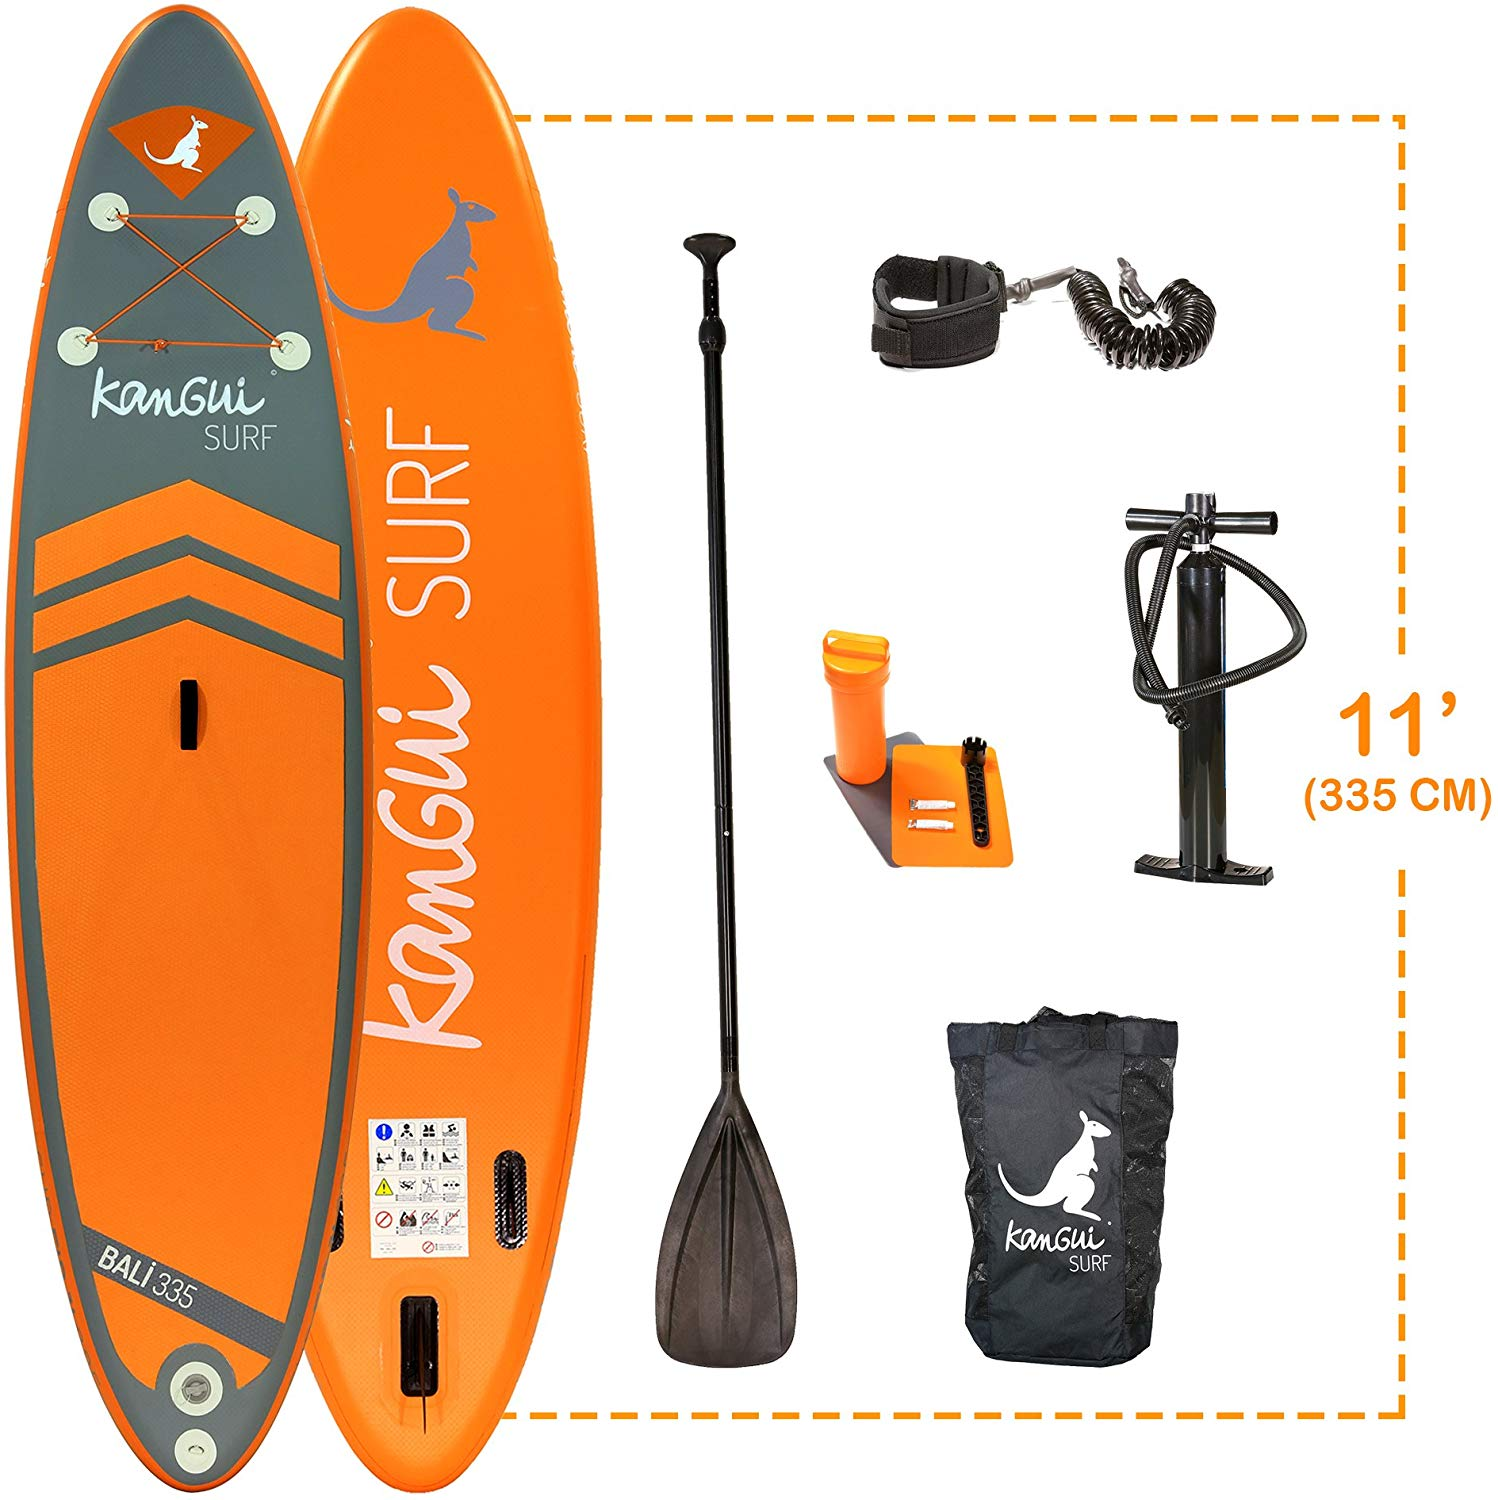 paddle gonflable Kangui - Stand up Paddle 335cm